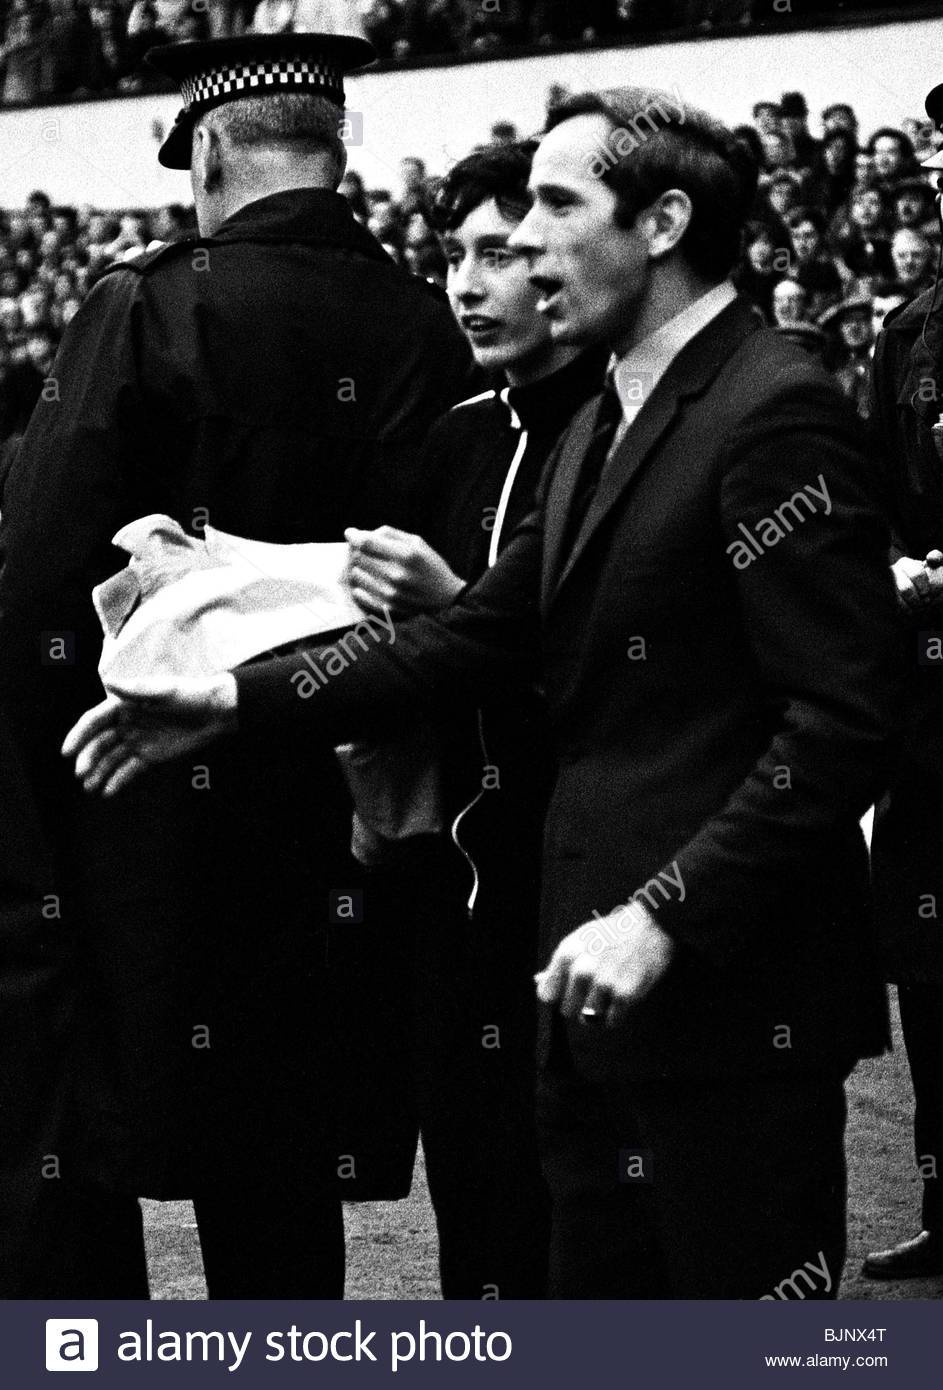 23/10/71 LEAGUE CUP FINAL CELTIC V PARTICK THISTLE (1-4) HAMPDEN - GLASGOW - Stock Image